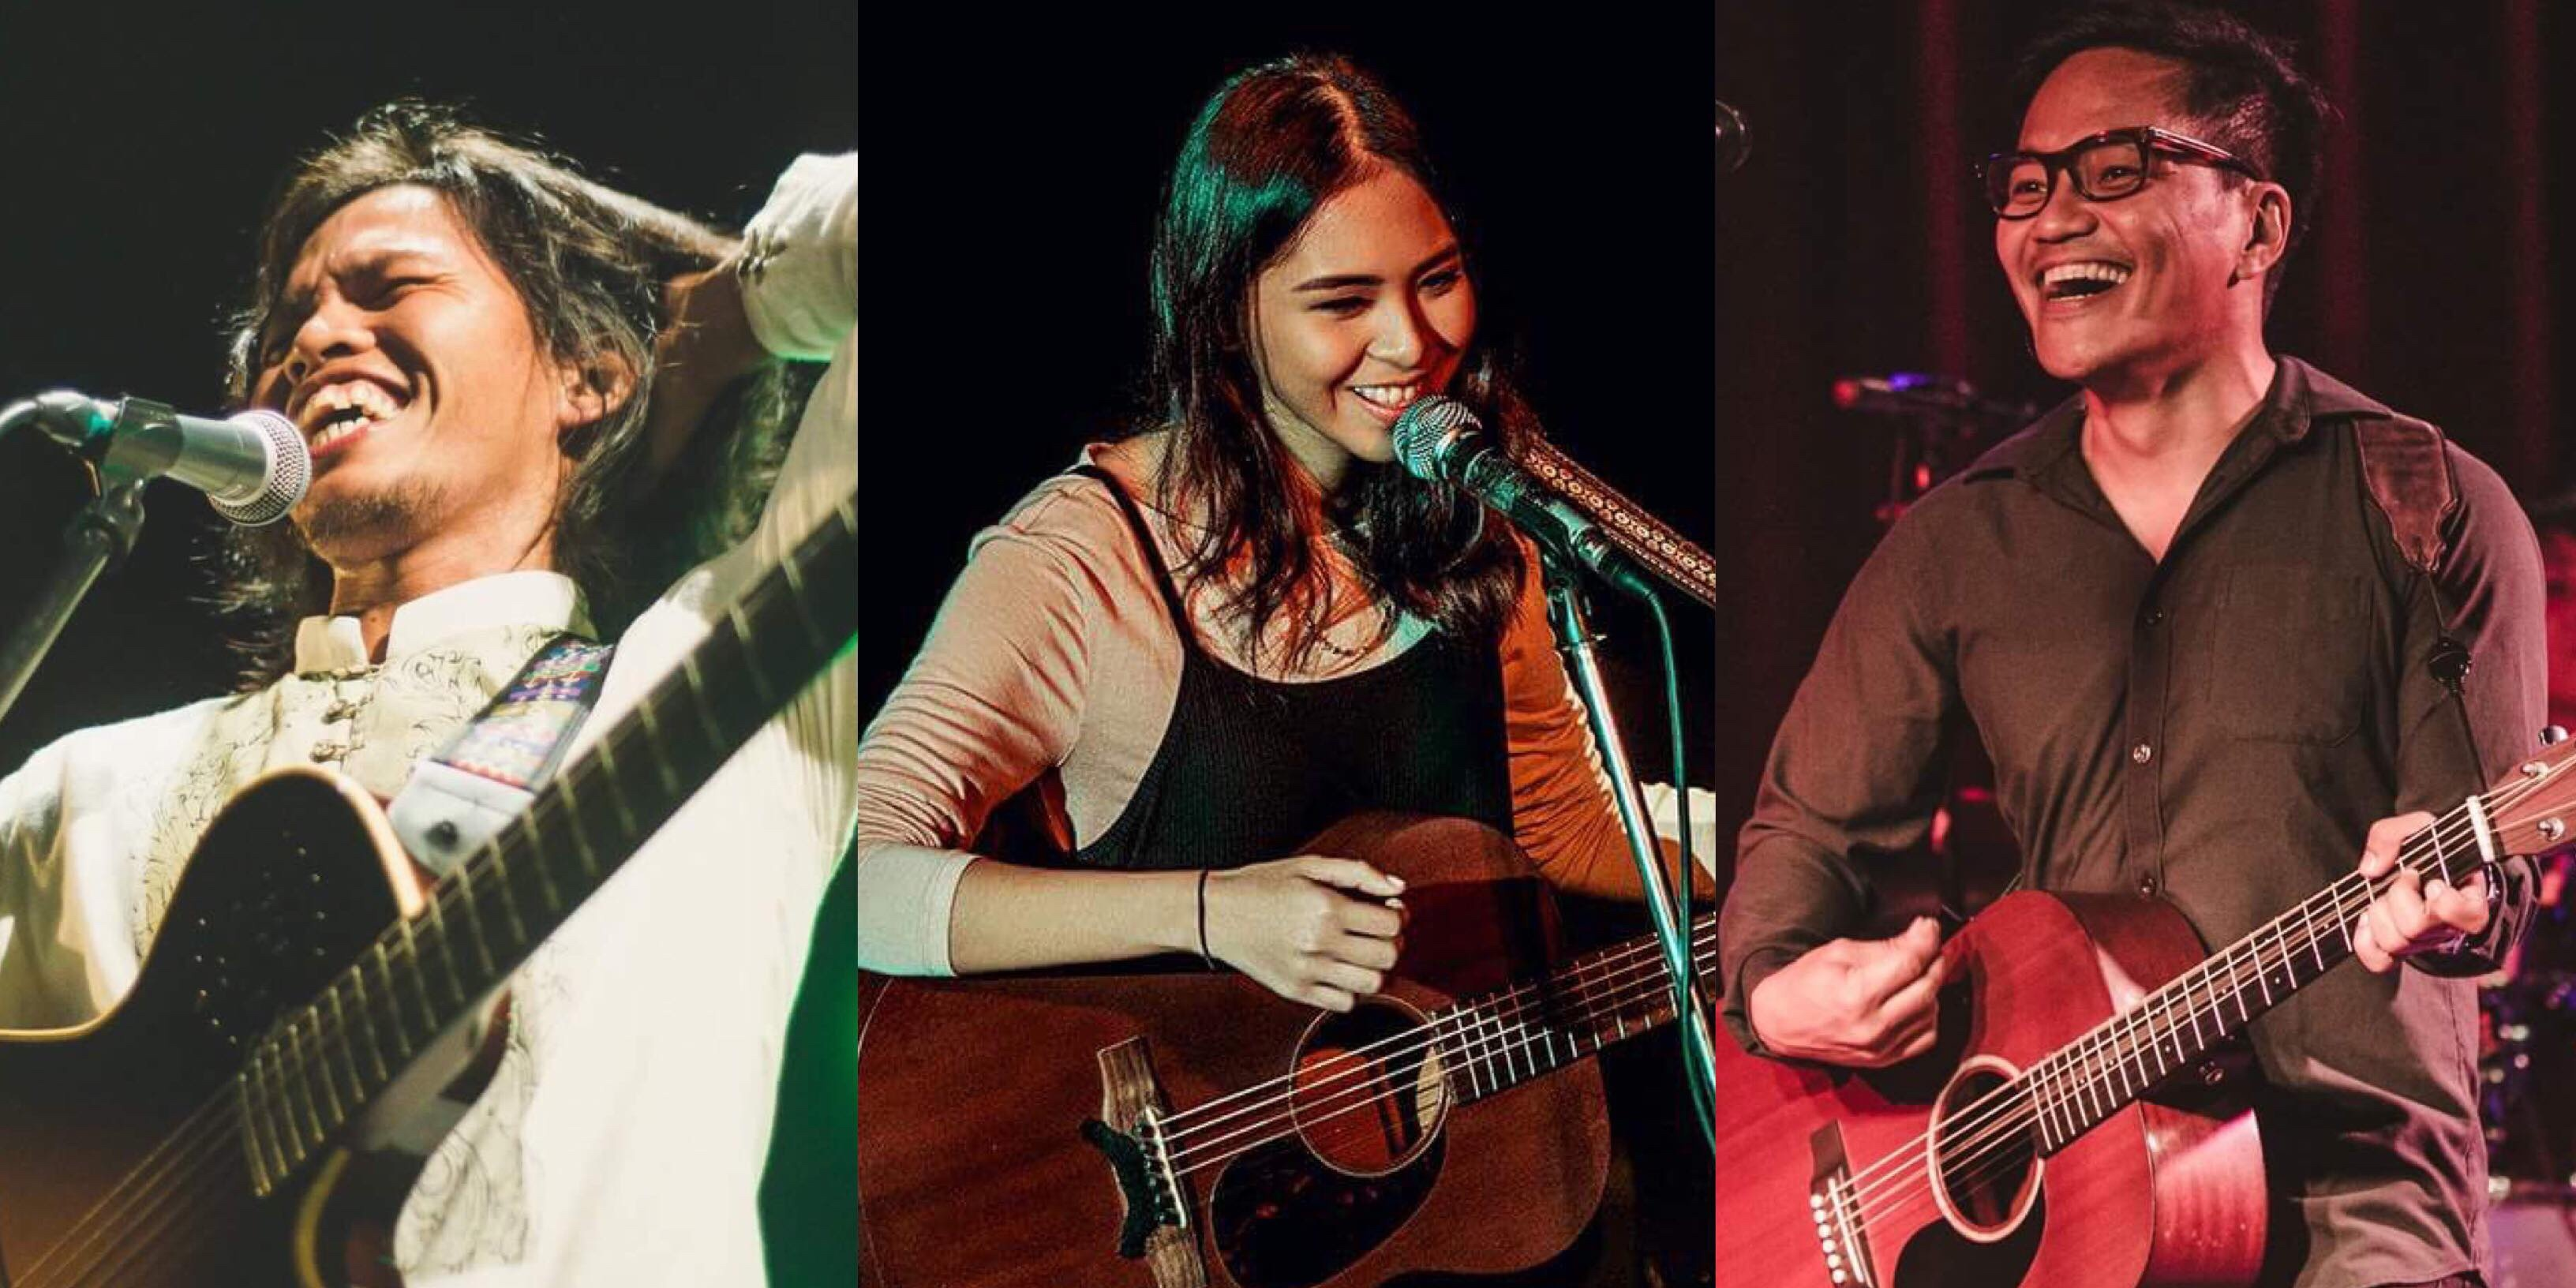 Ensemble: A Valentine Concert unveils line-up - Bullet Dumas, Clara Benin, Ebe Dancel, and more